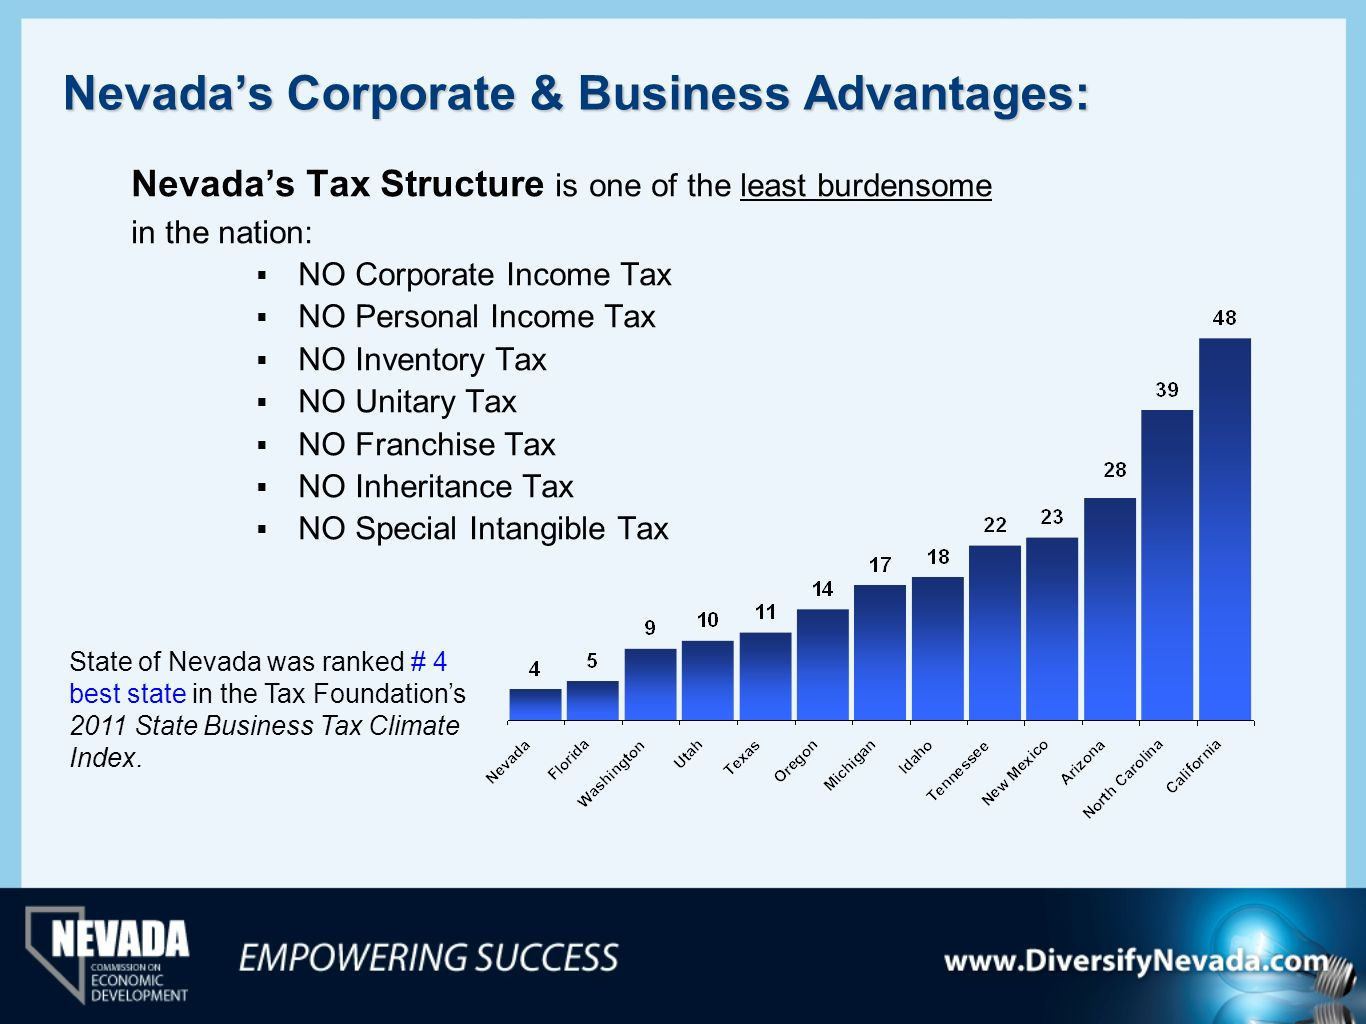 Nevada's Corporate & Business Advantages: